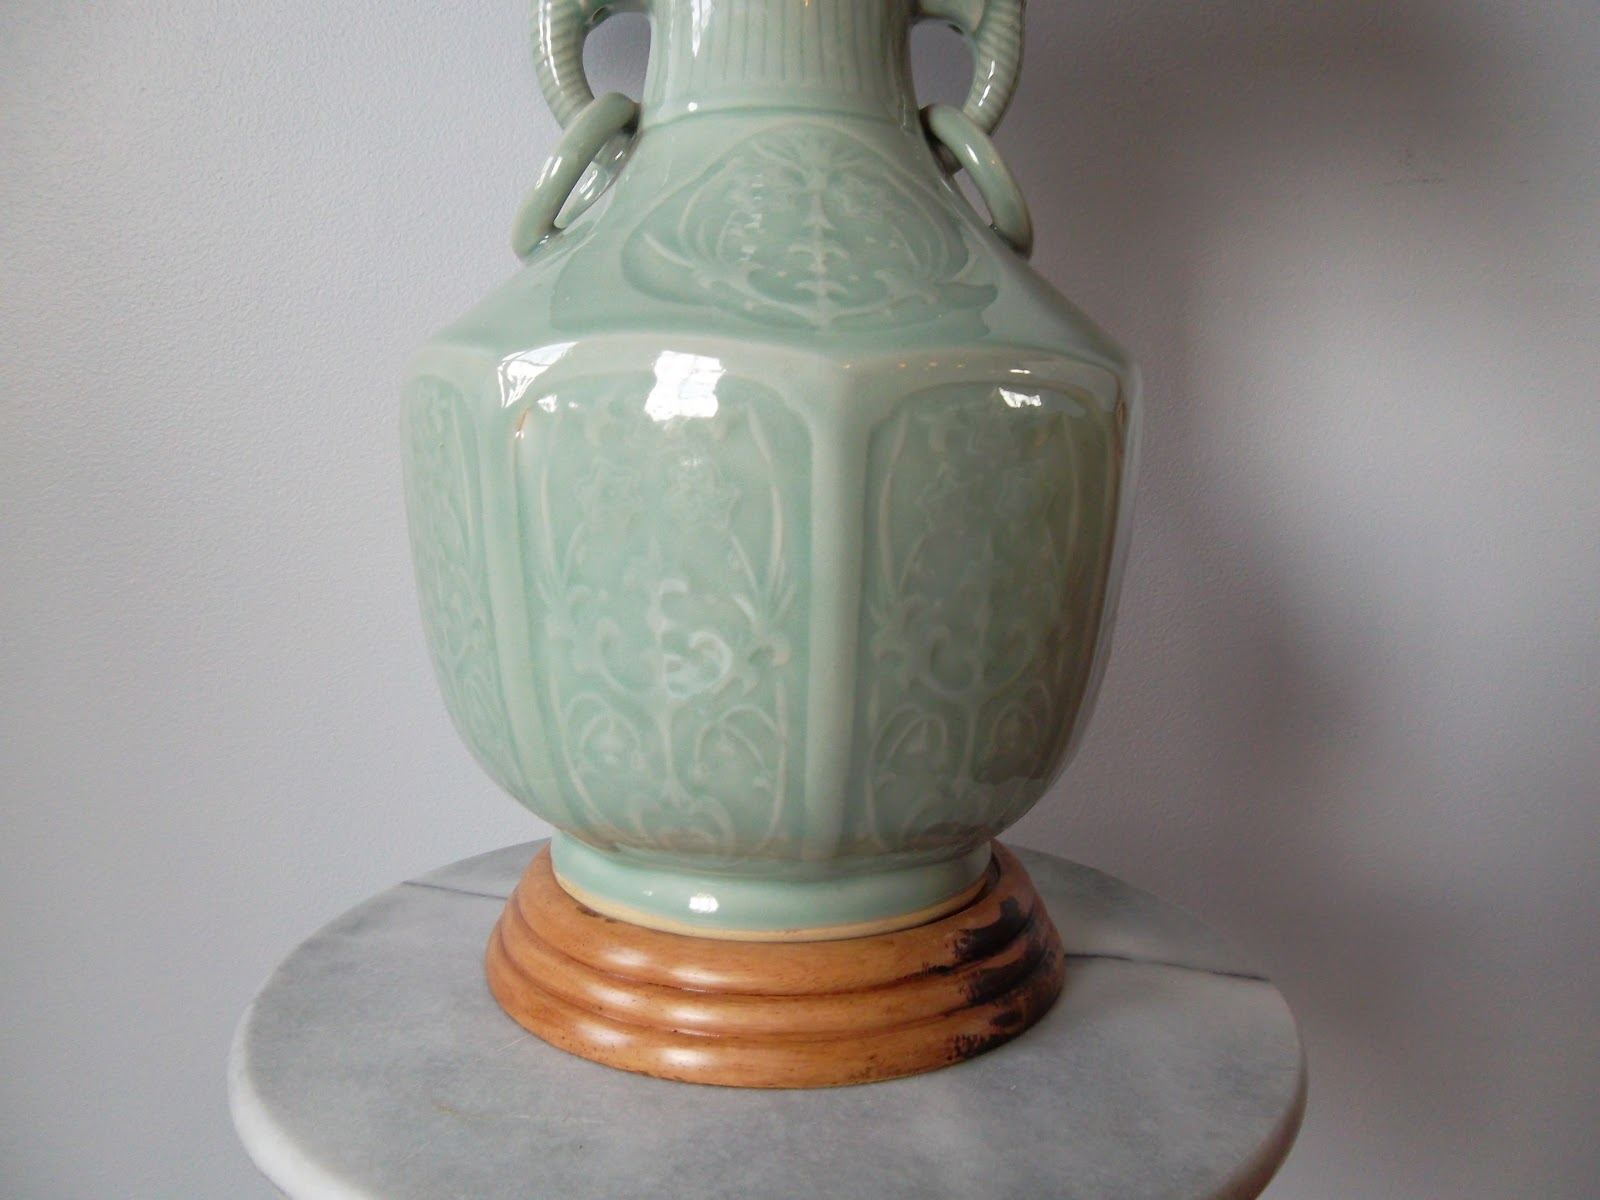 You can use most any vase or container to make a lamp. I used two vases  that I found at a garden supply store.